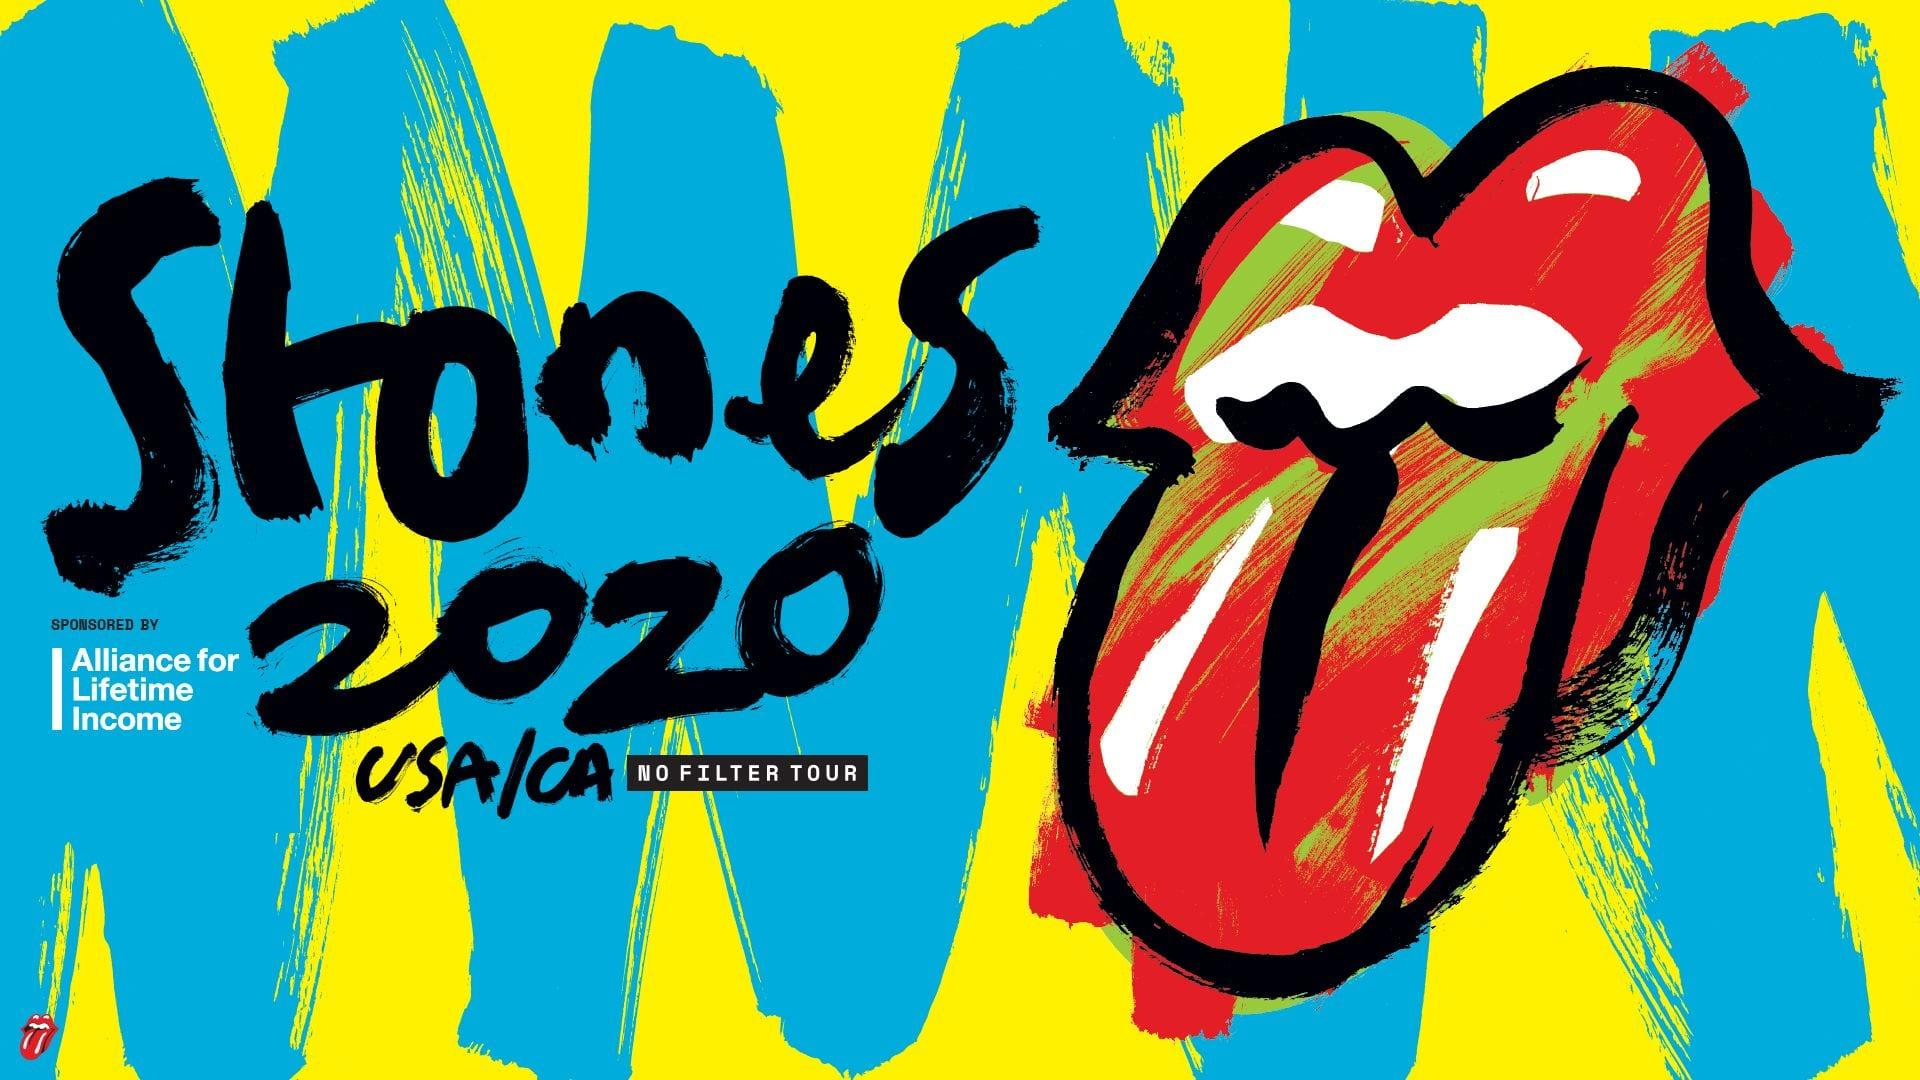 Rolling Stones Tour 2020 Wallpapers 1920x1080